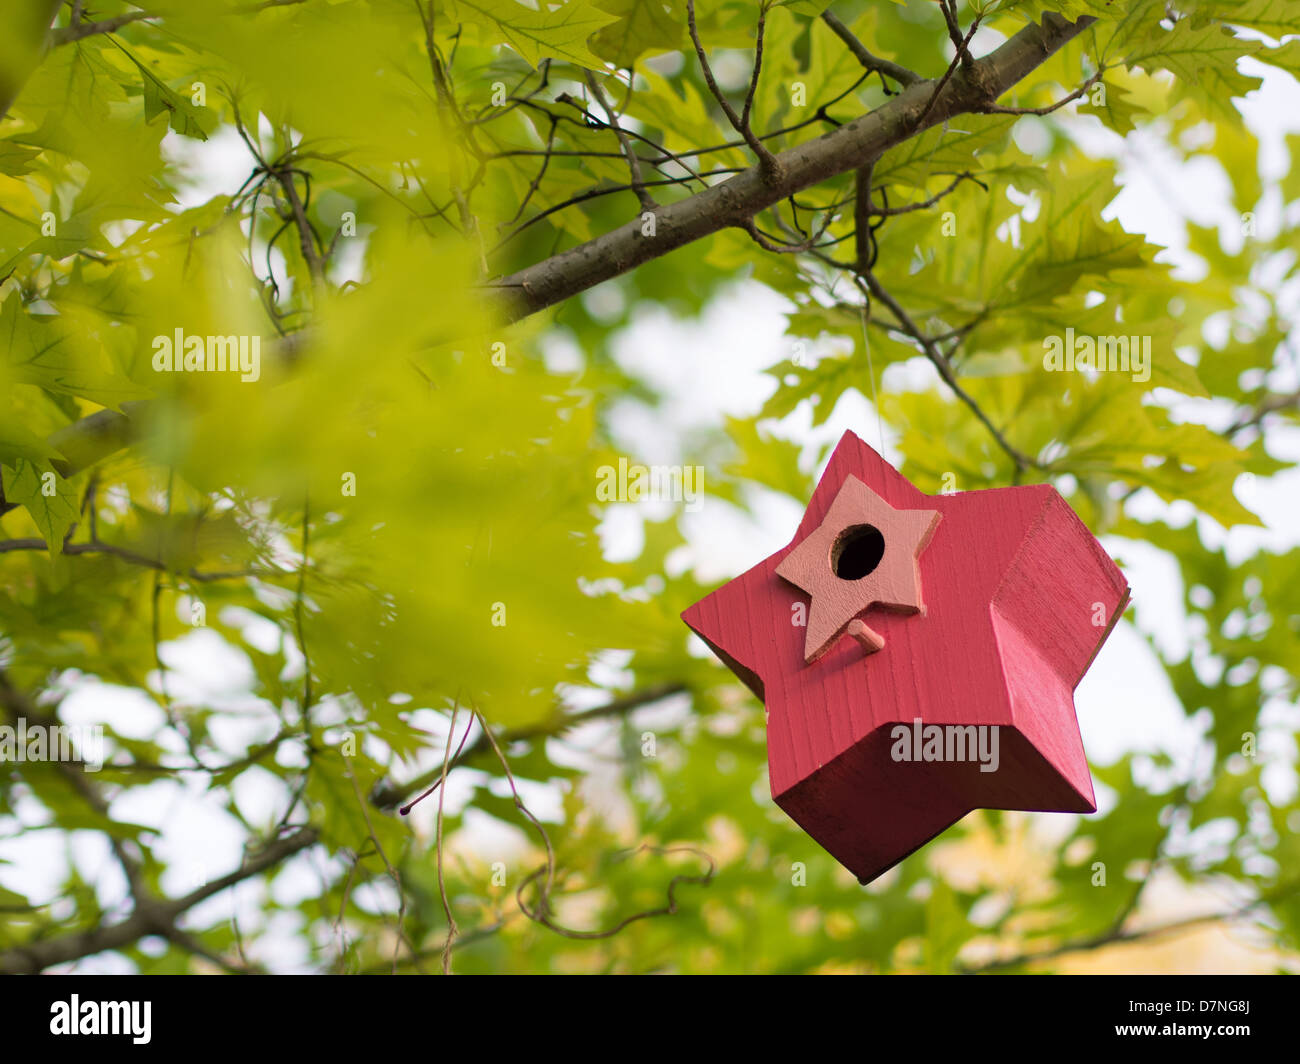 Colorful, wooden painted bird house hanging in a tree Stock Photo ...